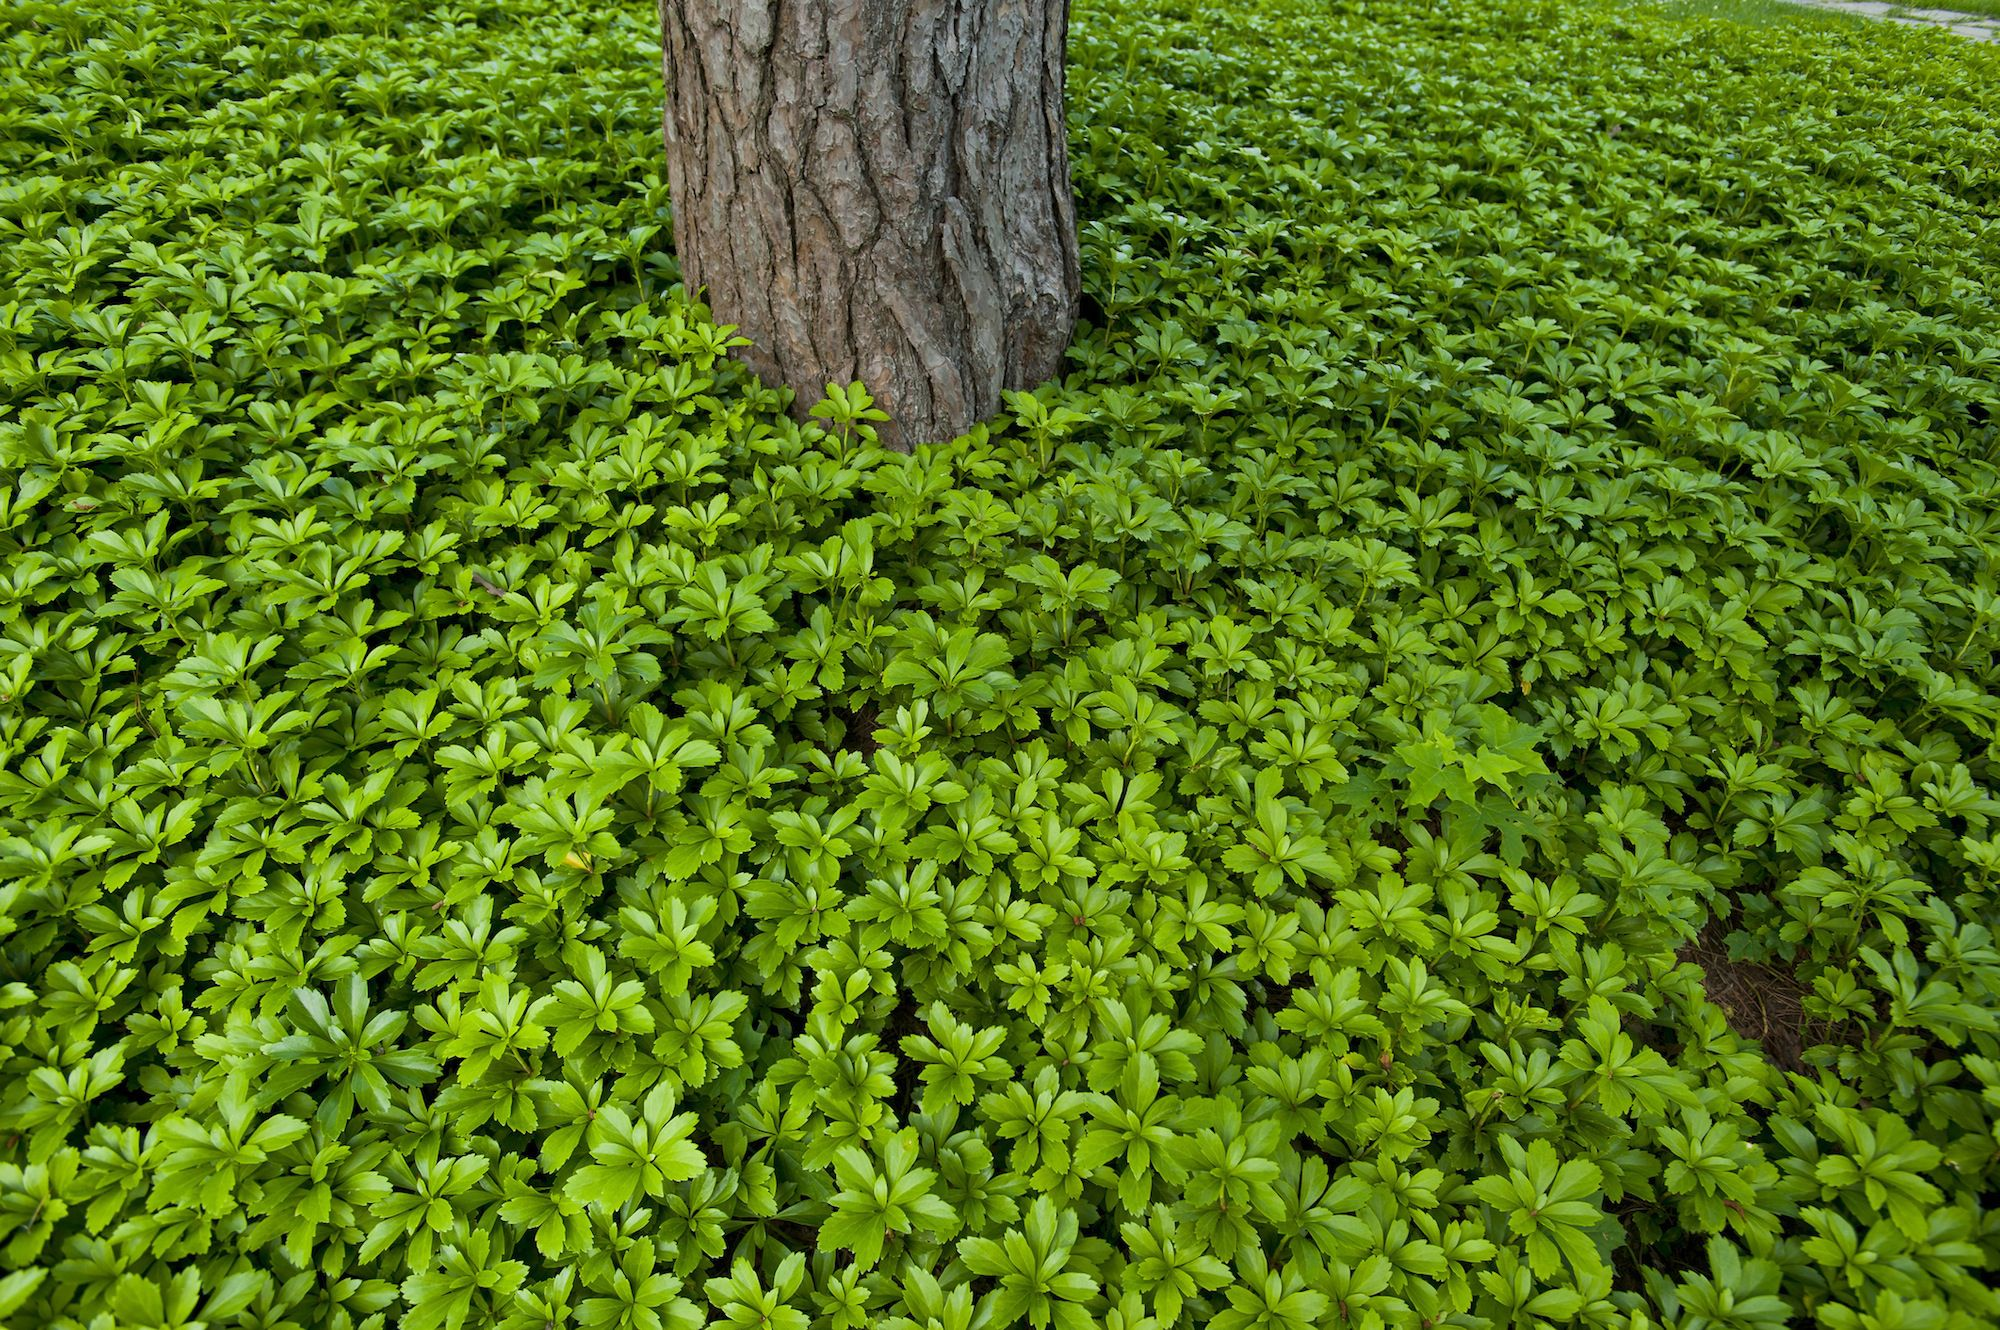 Pachysandra plant carpet and tree trunk